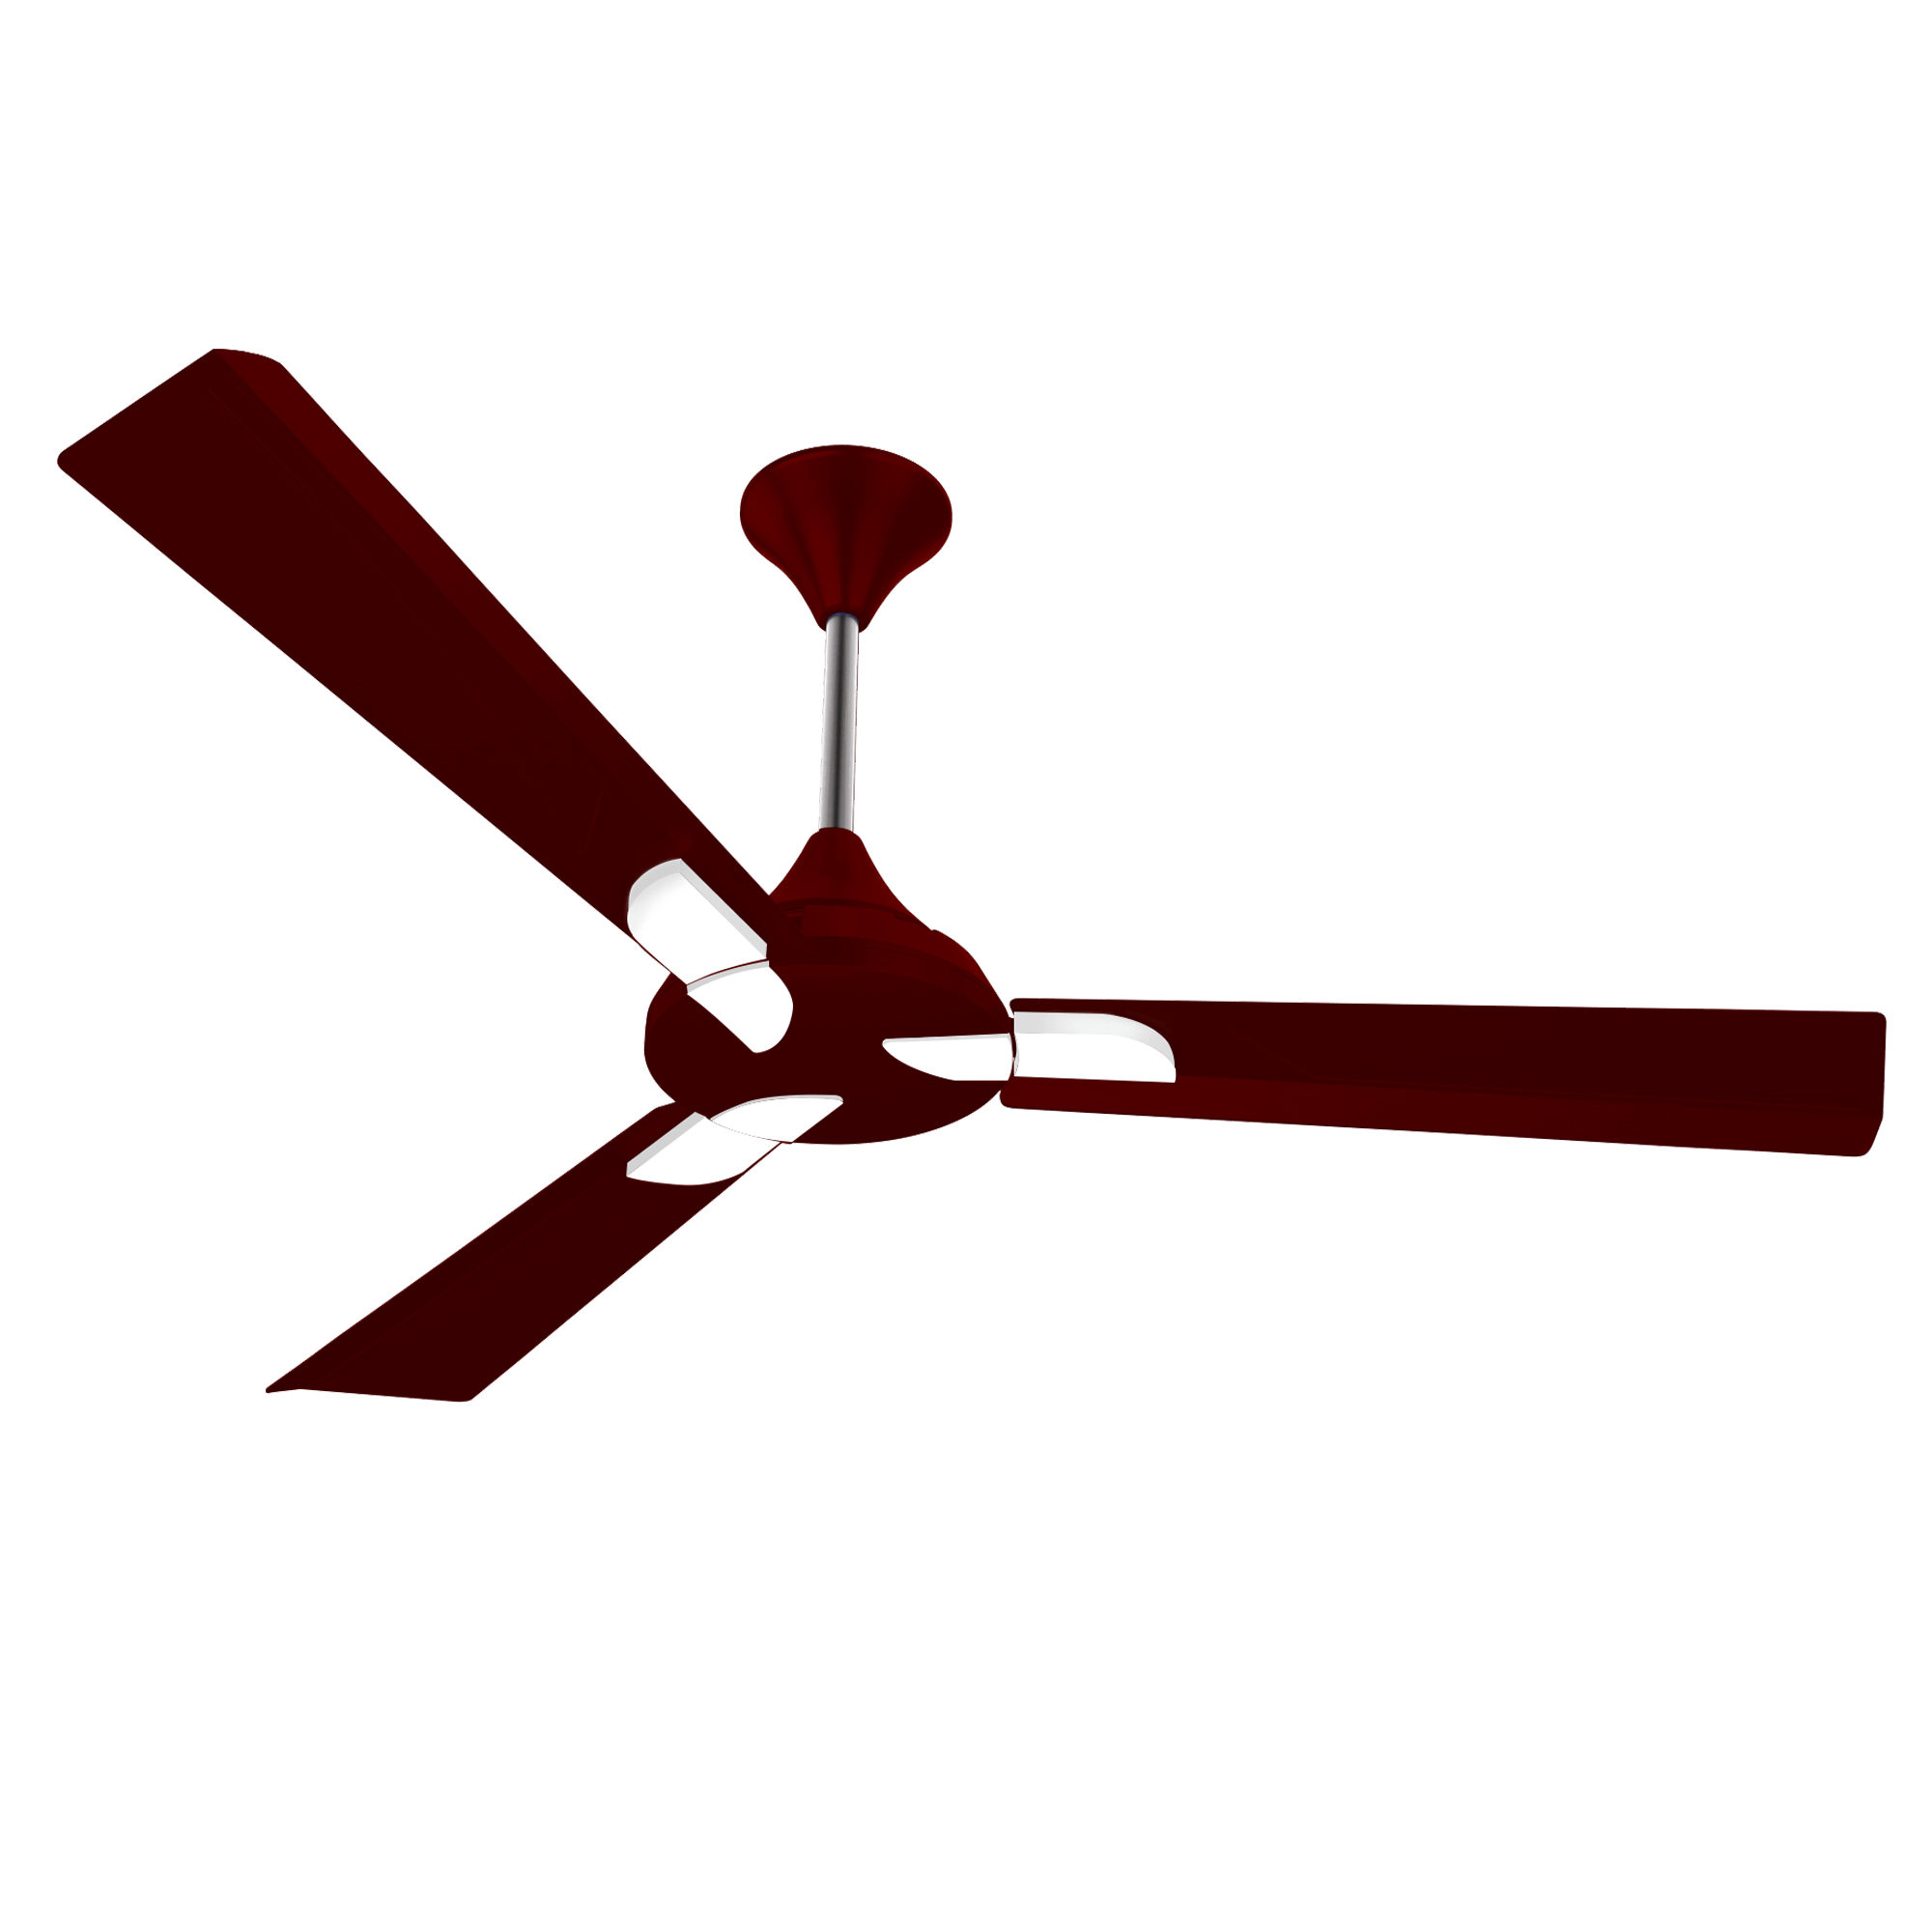 "Conion Ceiling Fan Alpha 56"" 3 Blades (Brilliant Maroon)"